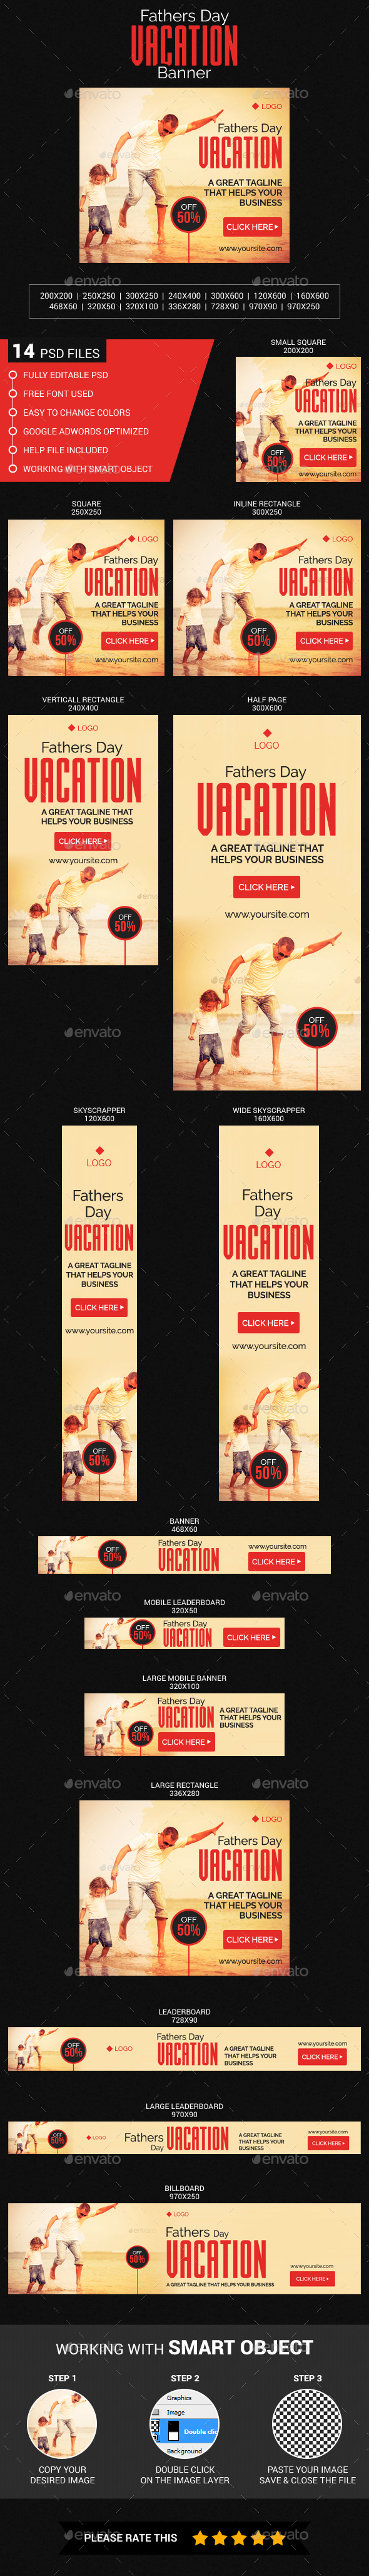 Fathers Day Vacation - Banners & Ads Web Elements